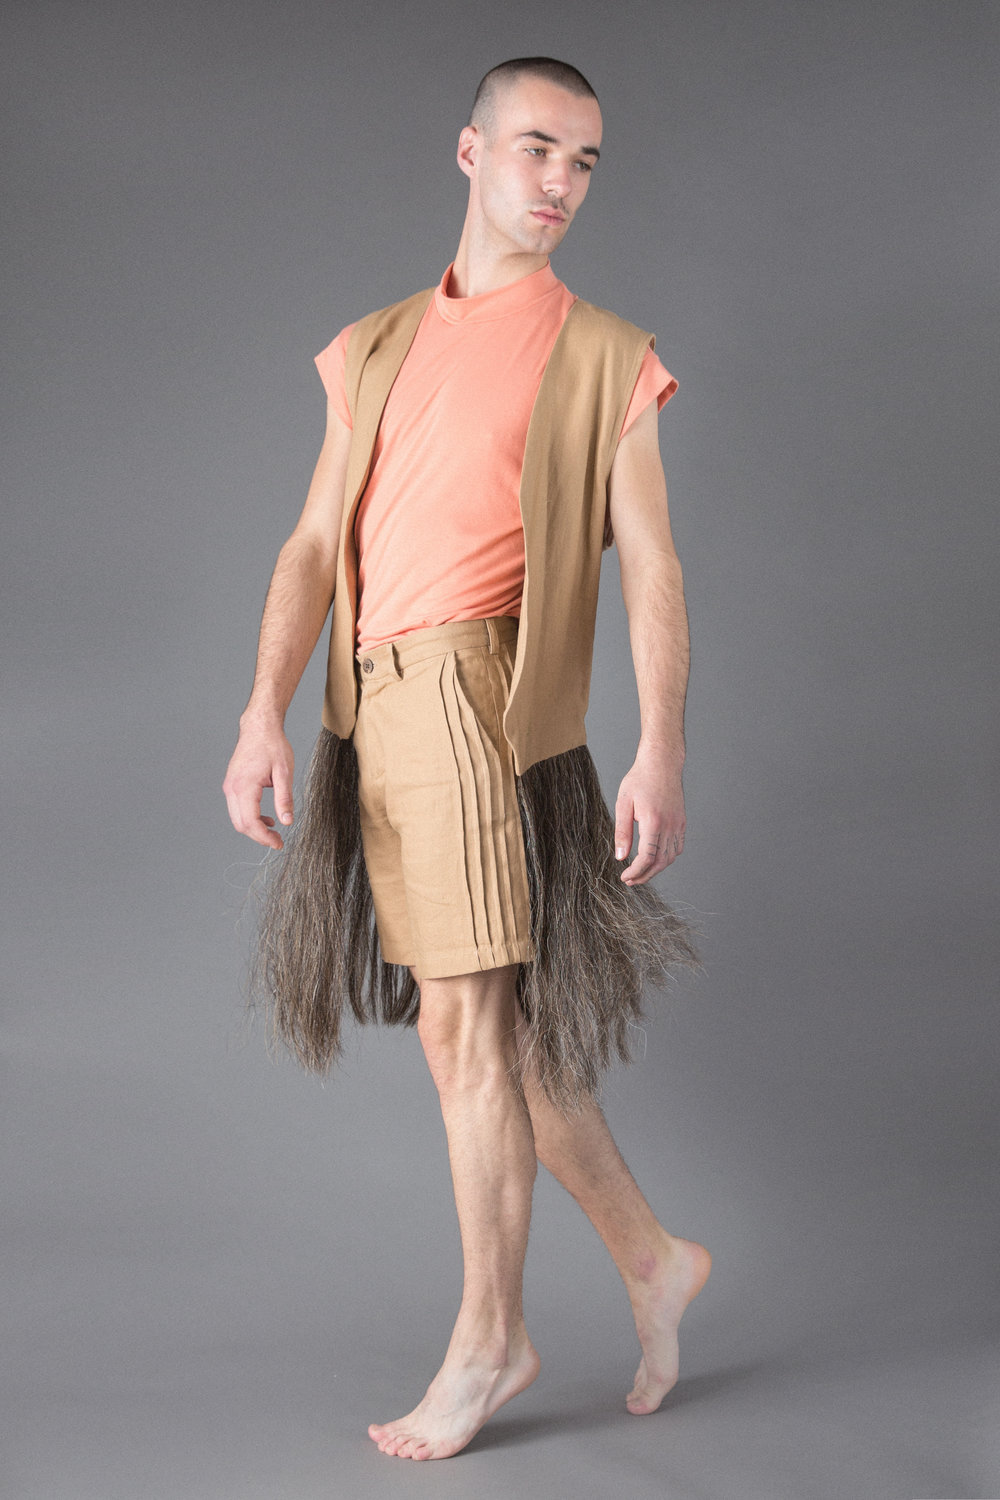 cotton t, linen shorts, linen and horsehair vest